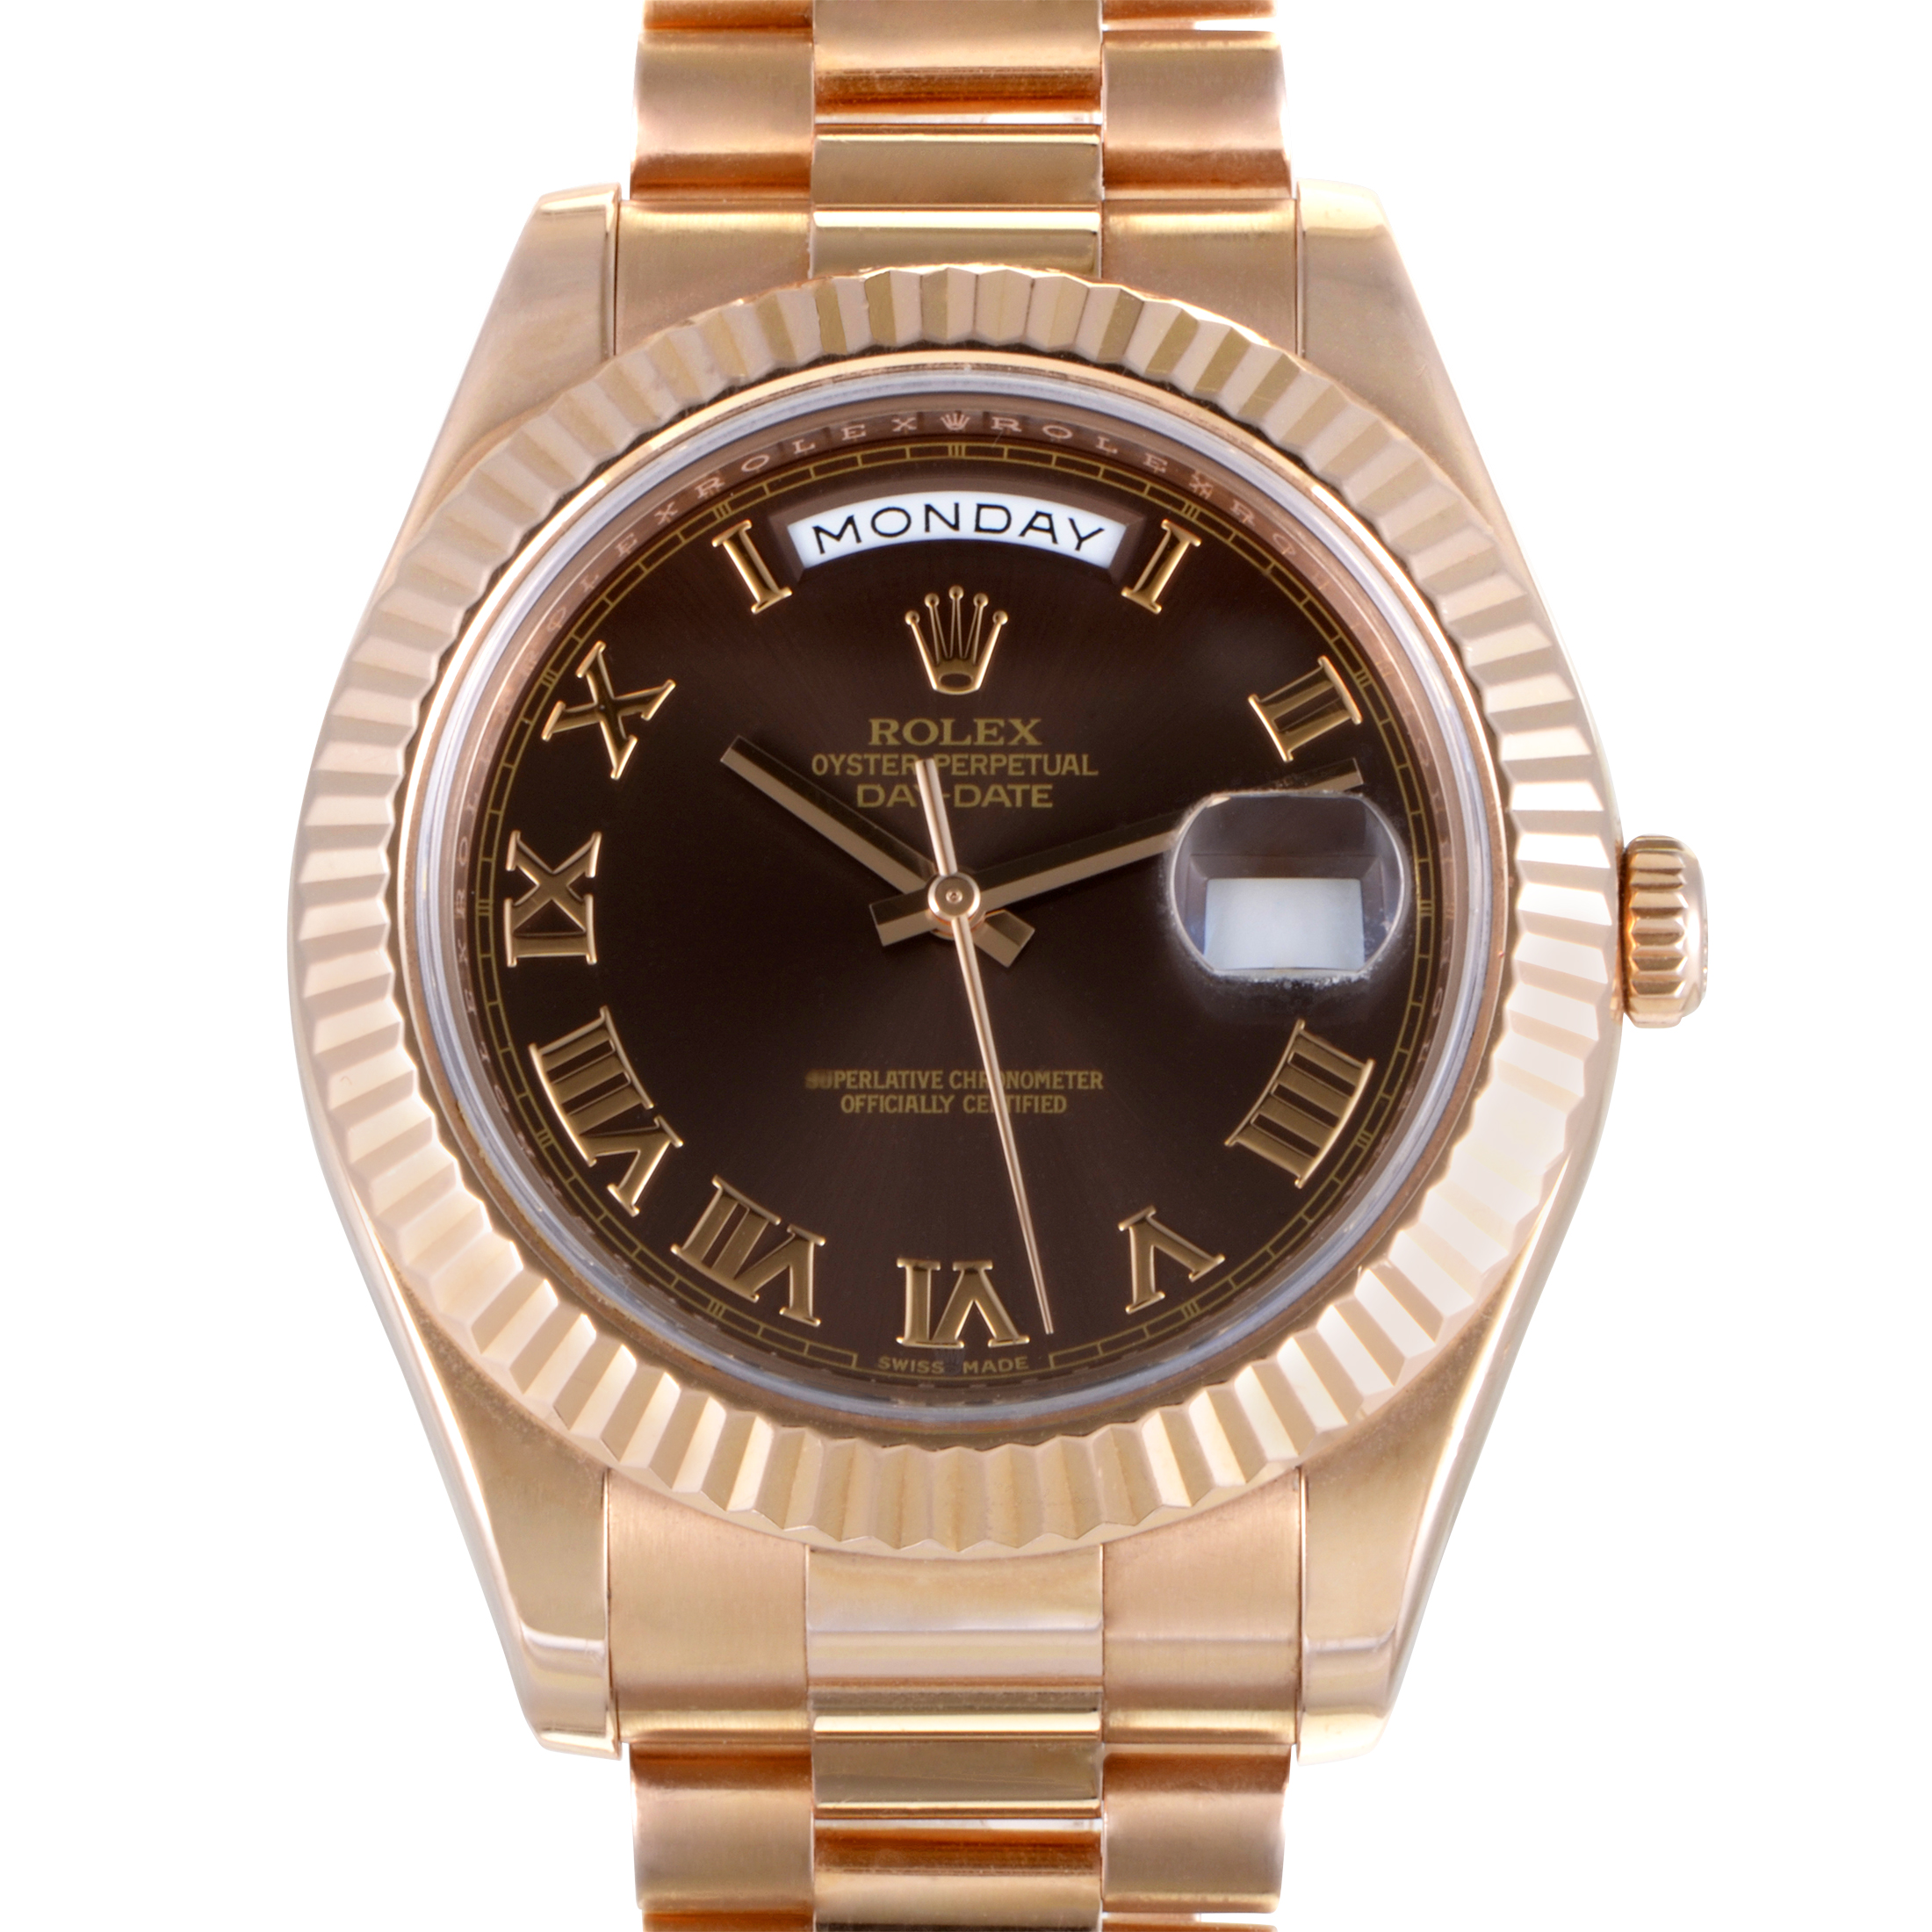 Oyster Perpetual Day-Date II Men's Automatic Watch 218235 brrp